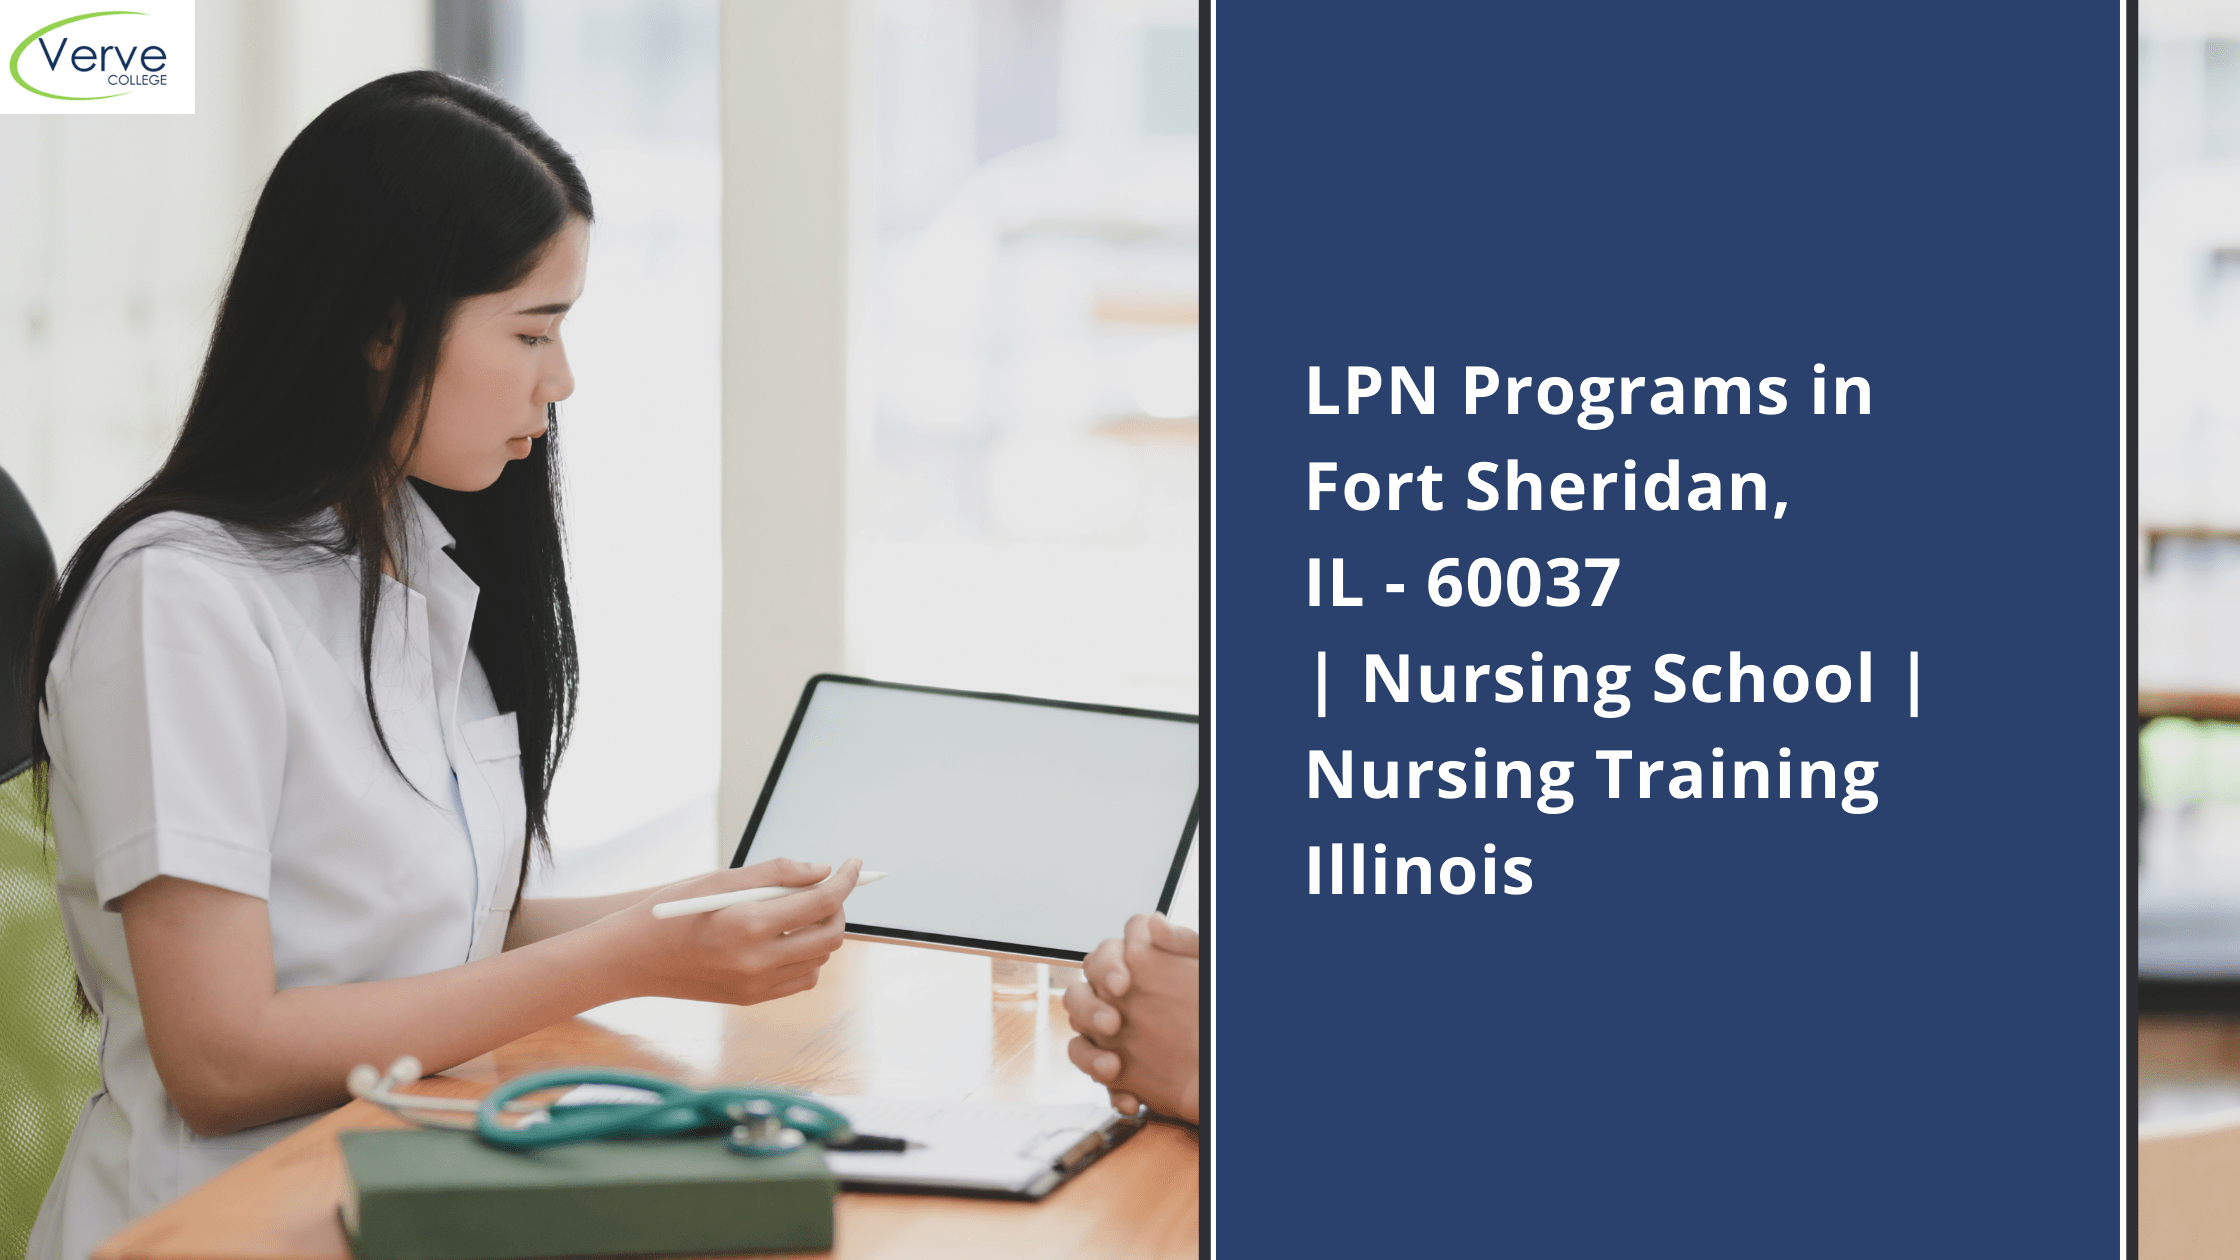 LPN Programs in Fort Sheridan, IL – 60037 | Nursing School | Nursing Training Illinois